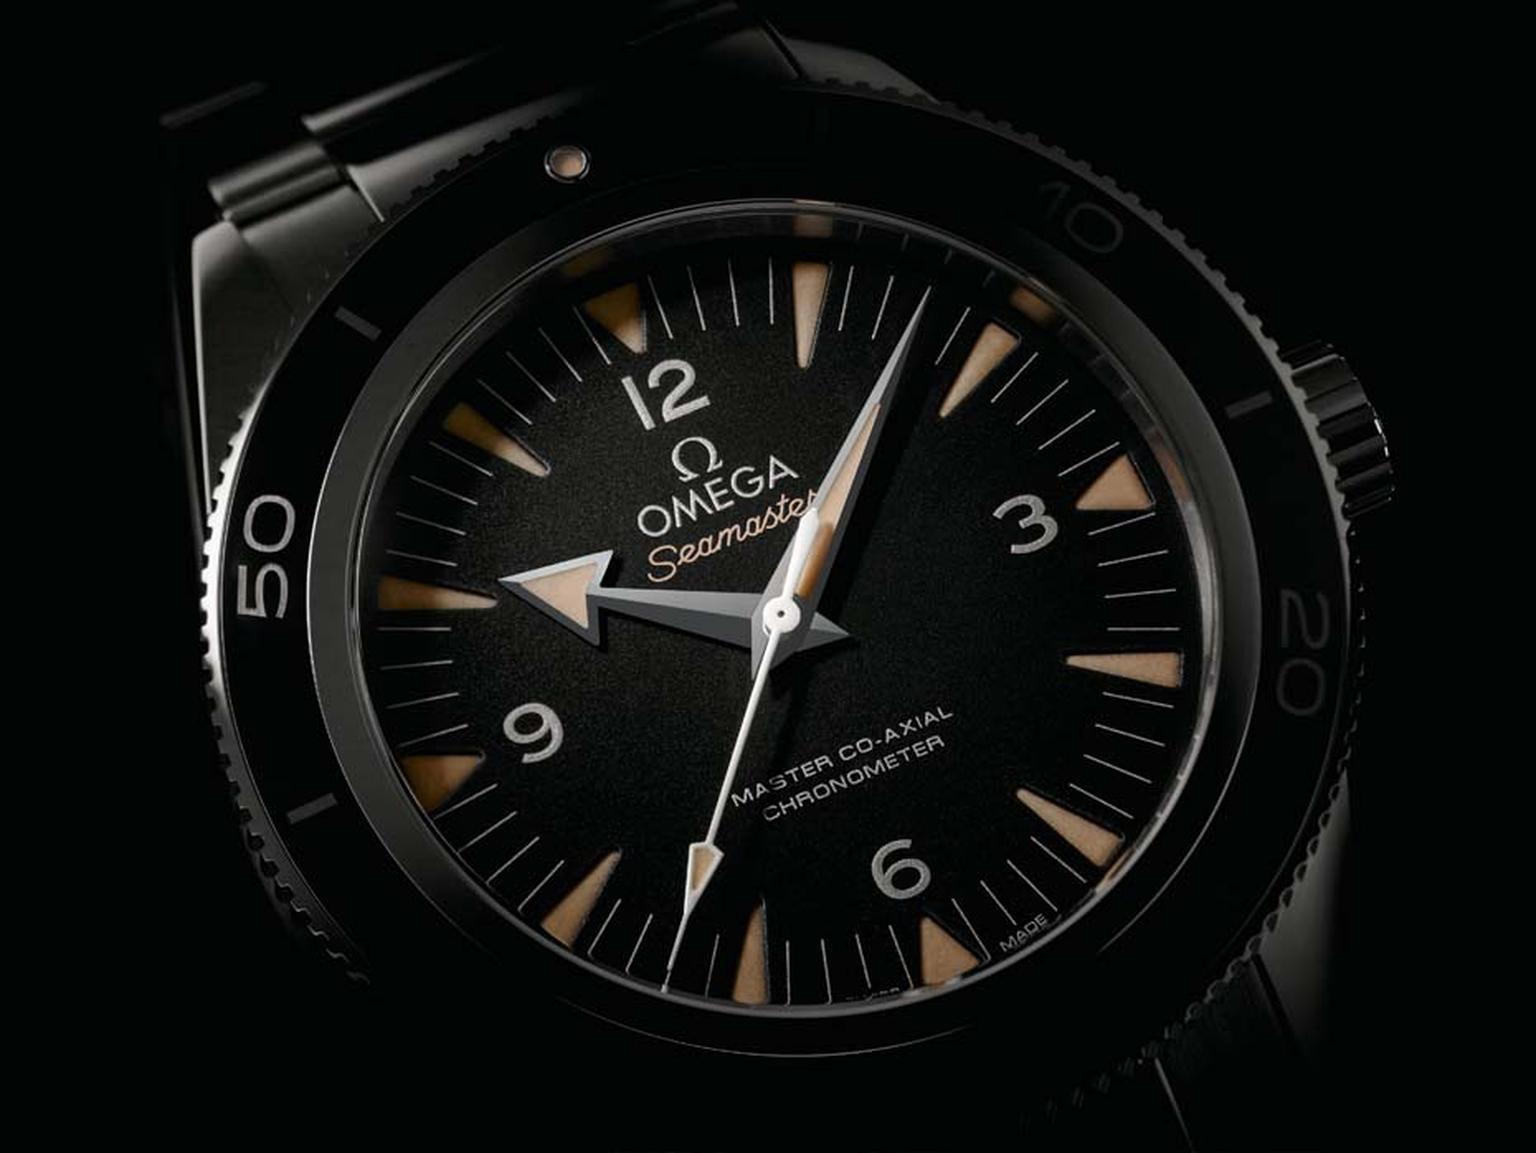 The new 41mm Omega Seamaster 300 is equipped with proprietary Co-Axial technology with a COSC-certified chronometer and for extra measure  an anti-magnetic shield that protects it from fields of up to 15,000 gauss.